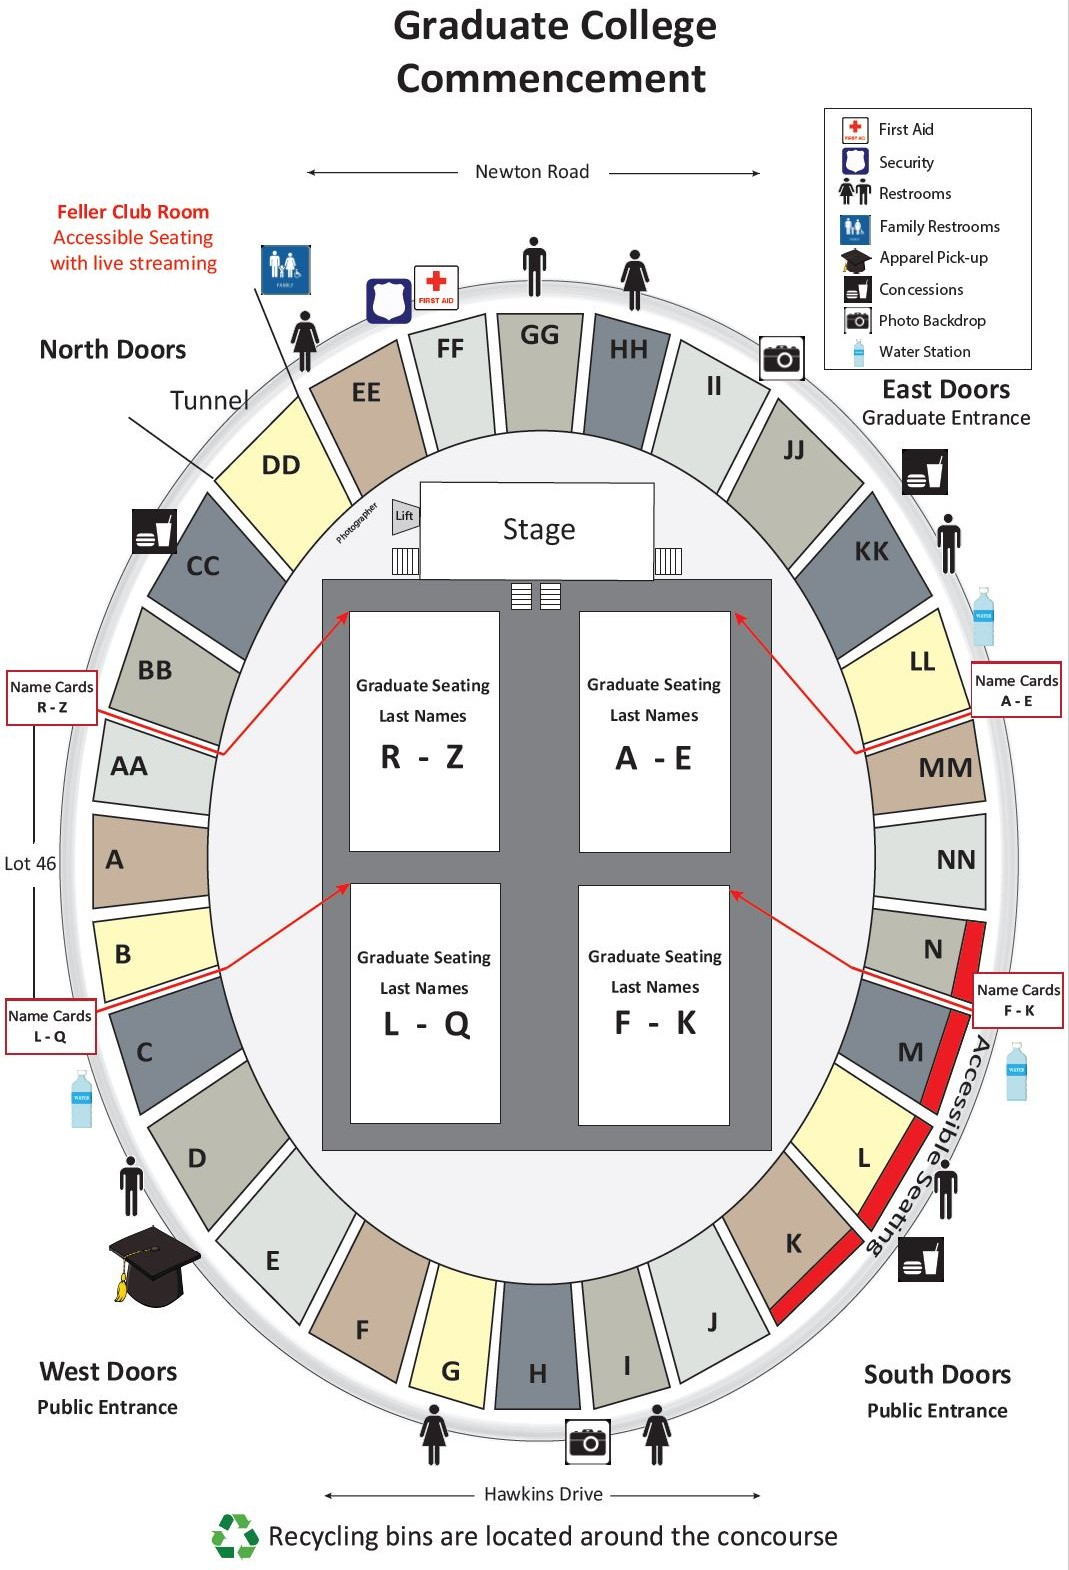 Graduate College Masters Ceremony Seating Map